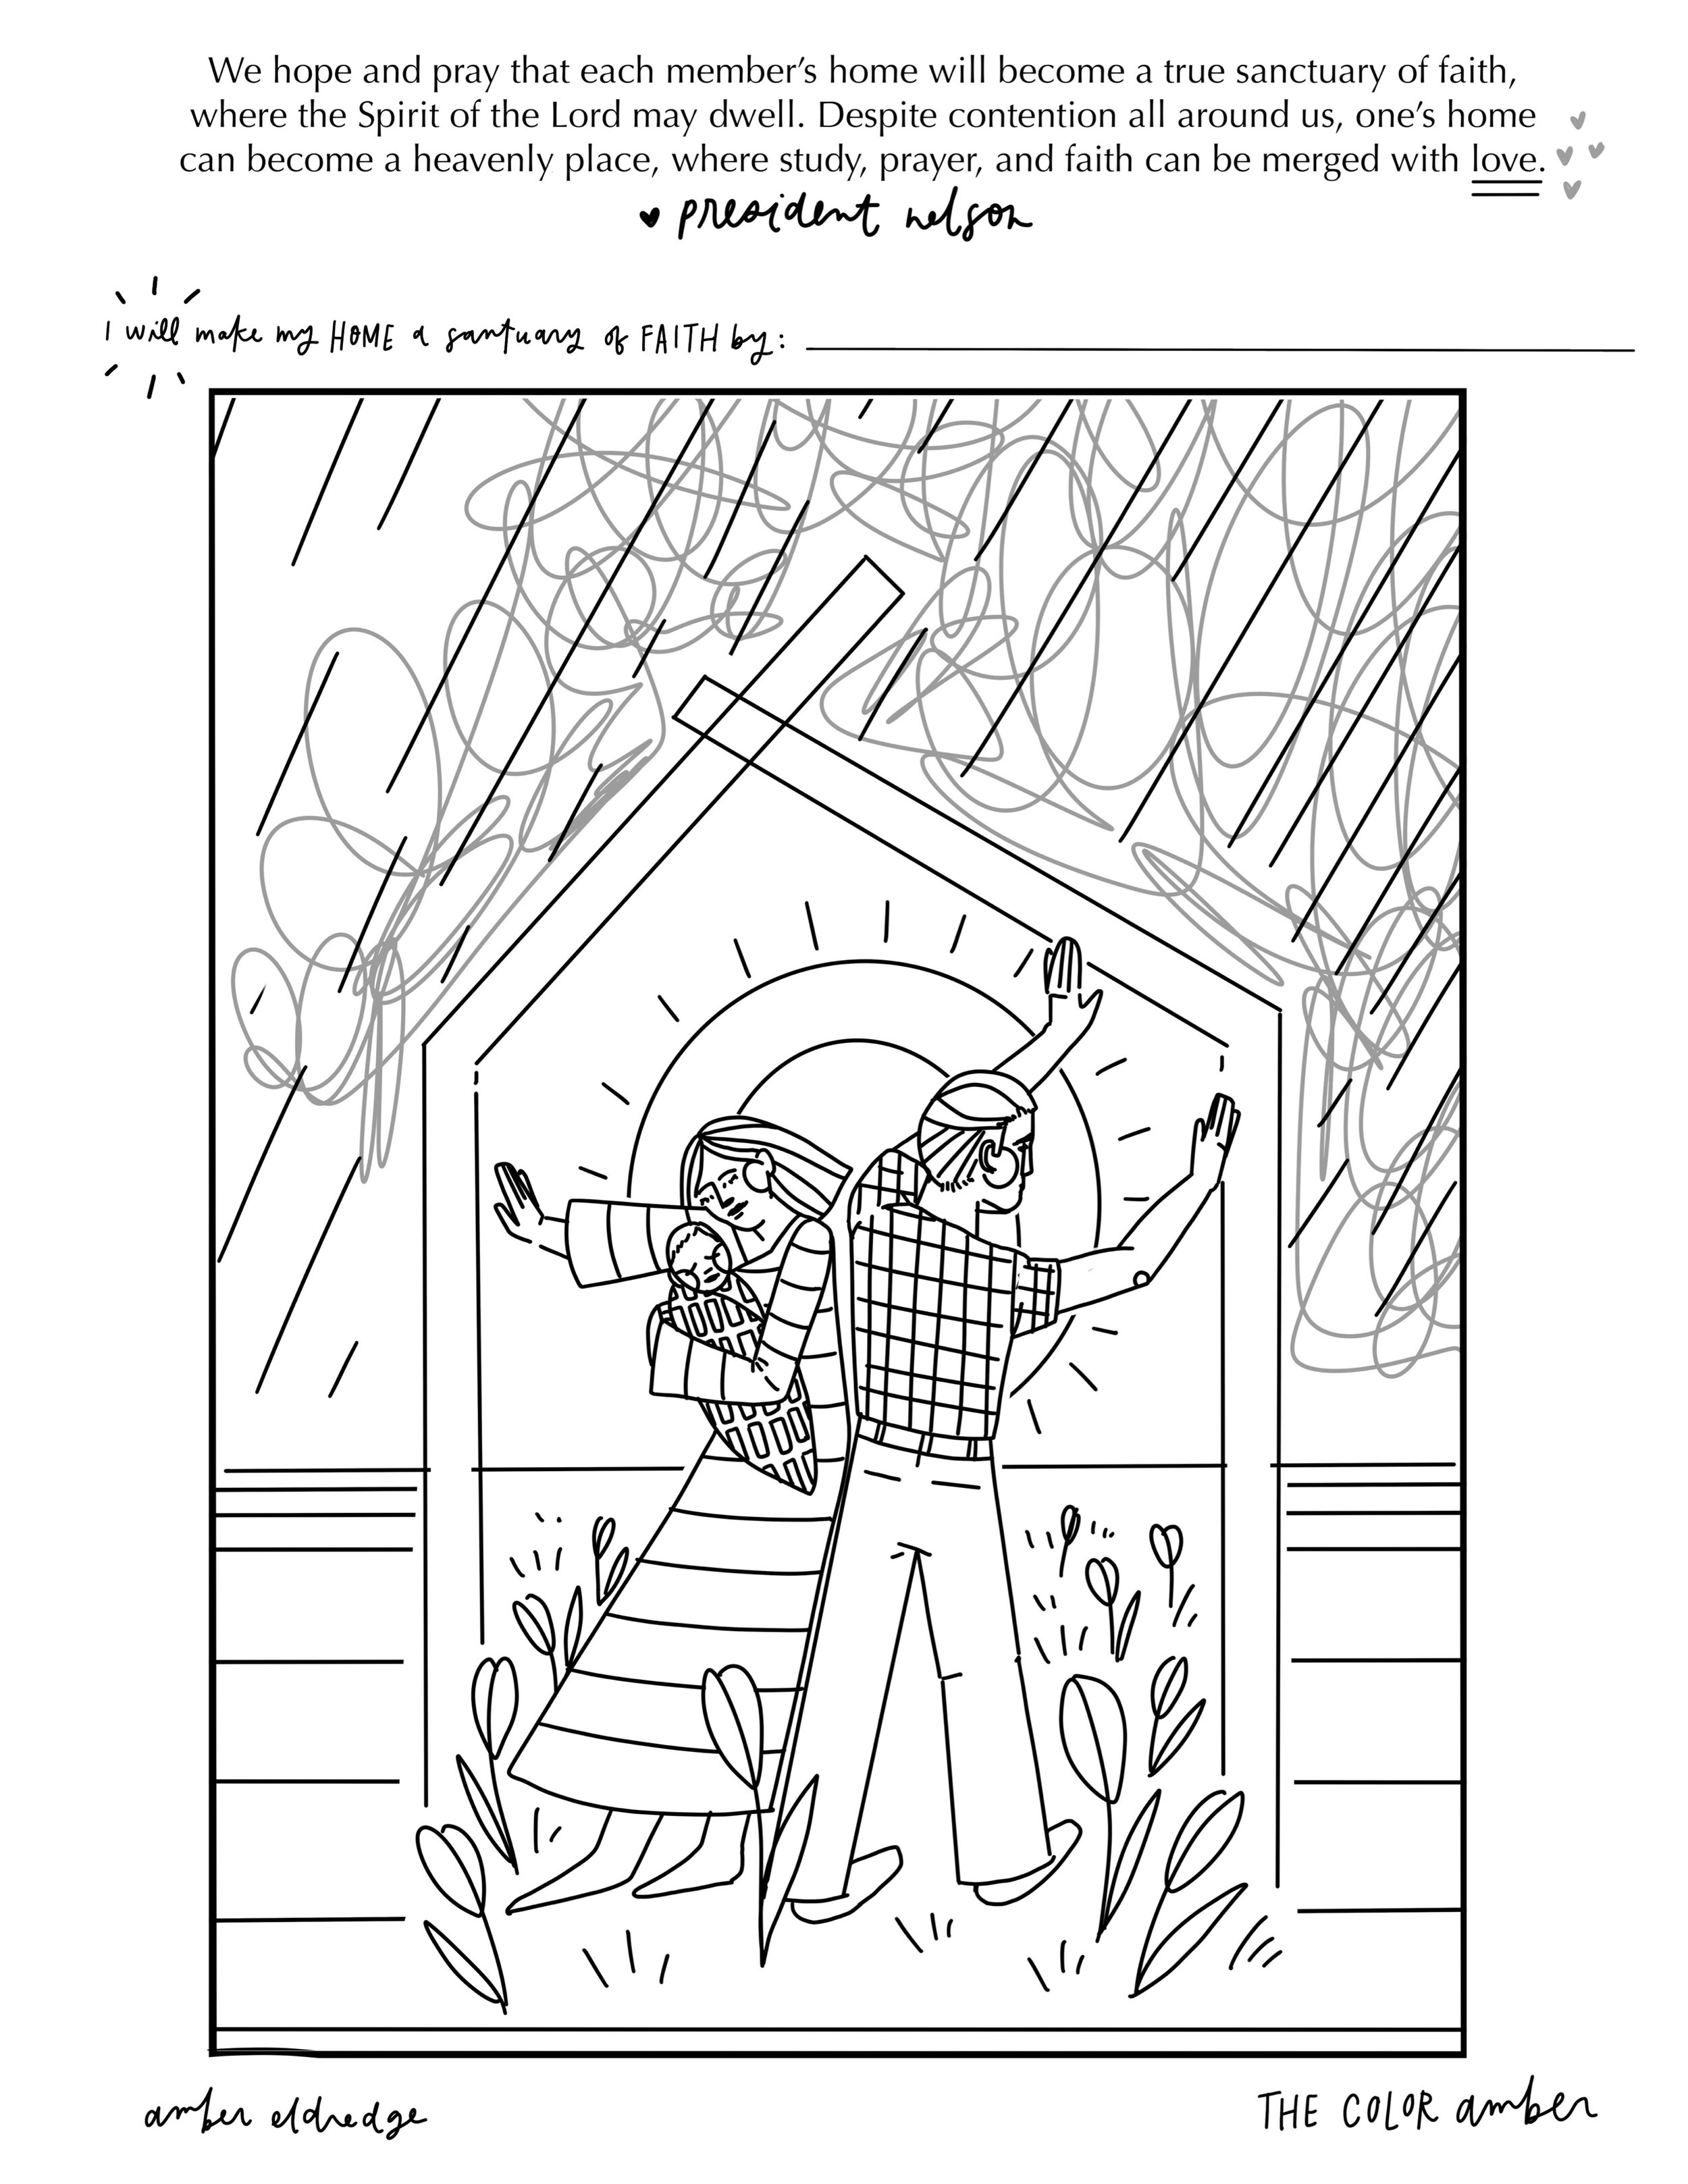 Printable Hope Coloring Pages   Love coloring pages, Coloring ...   3235x2500